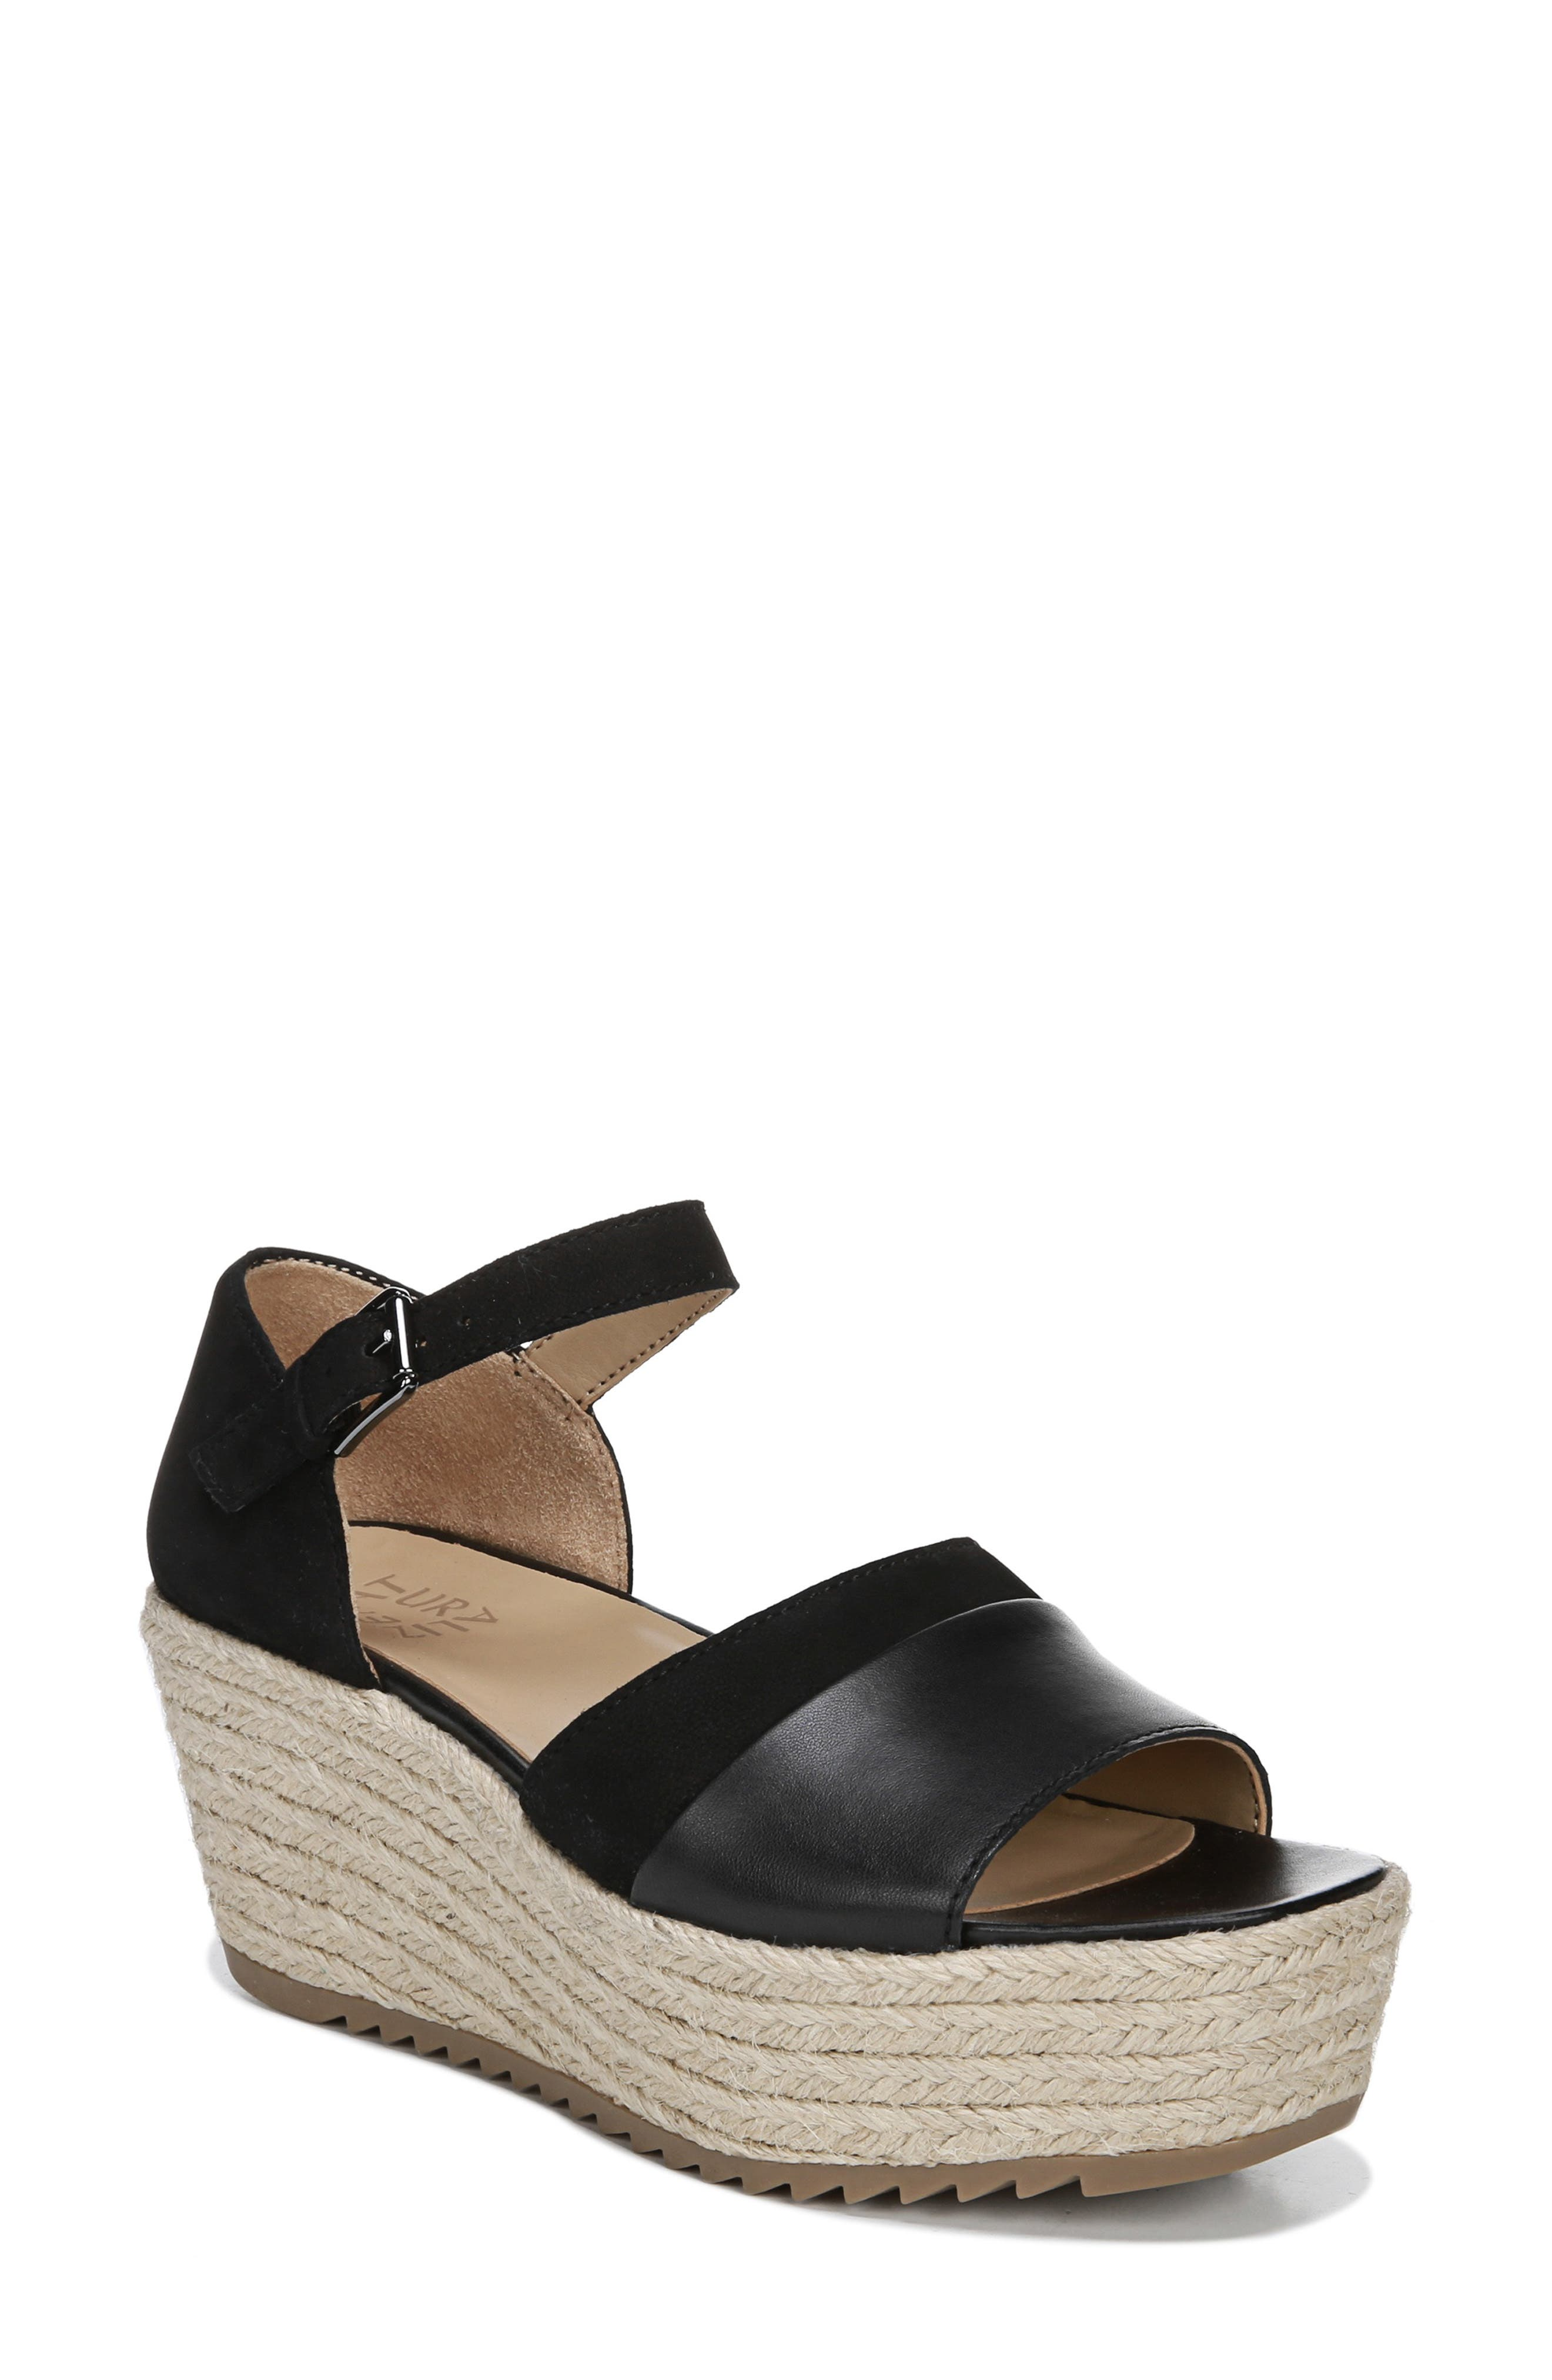 NATURALIZER Opal Espadrille Platform Wedge Sandal, Main, color, BLACK LEATHER